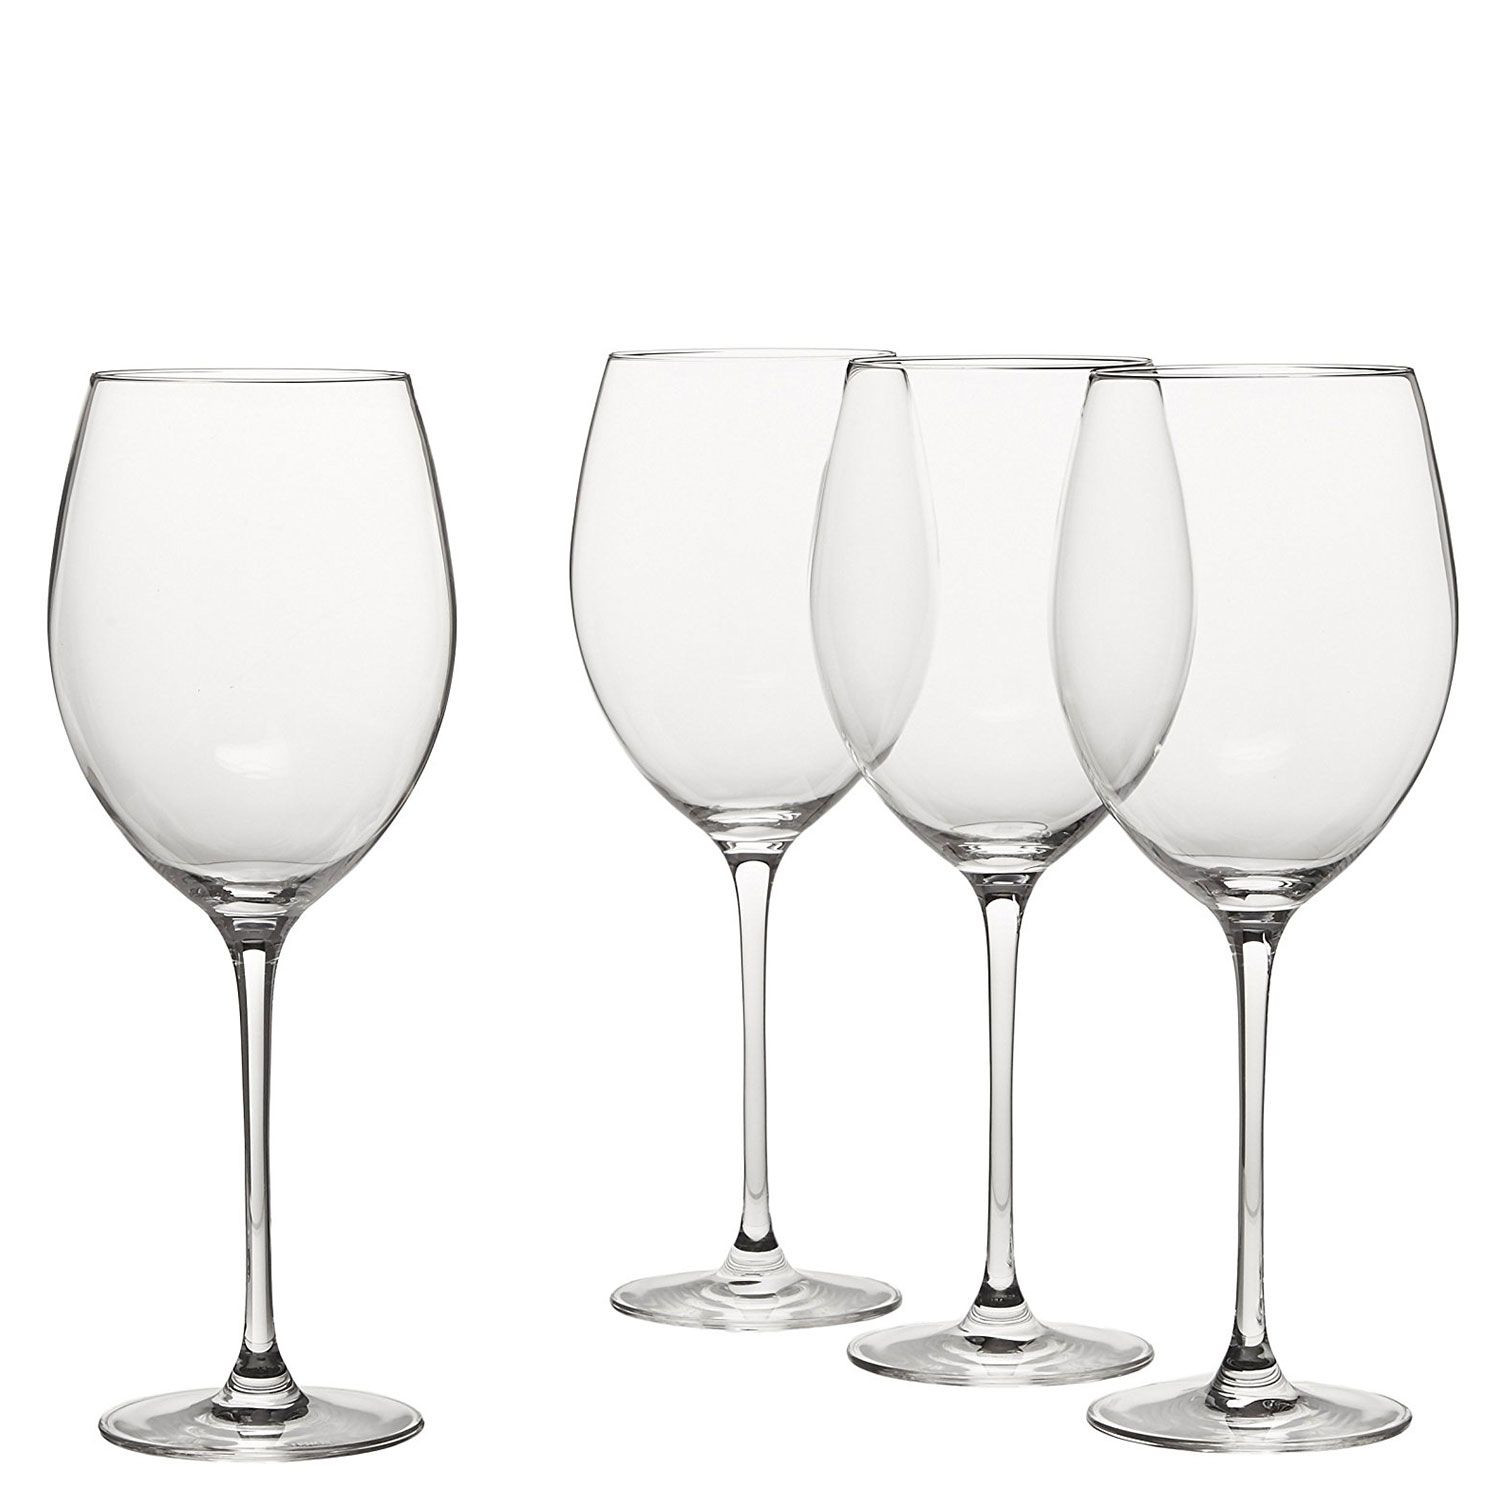 Old Waterford Crystal Vase Of 21 Waterford Crystal Vase Marquis the Weekly World within Grand Bordeaux Wine Glass 26 5cm 800ml Via Williamashley Com